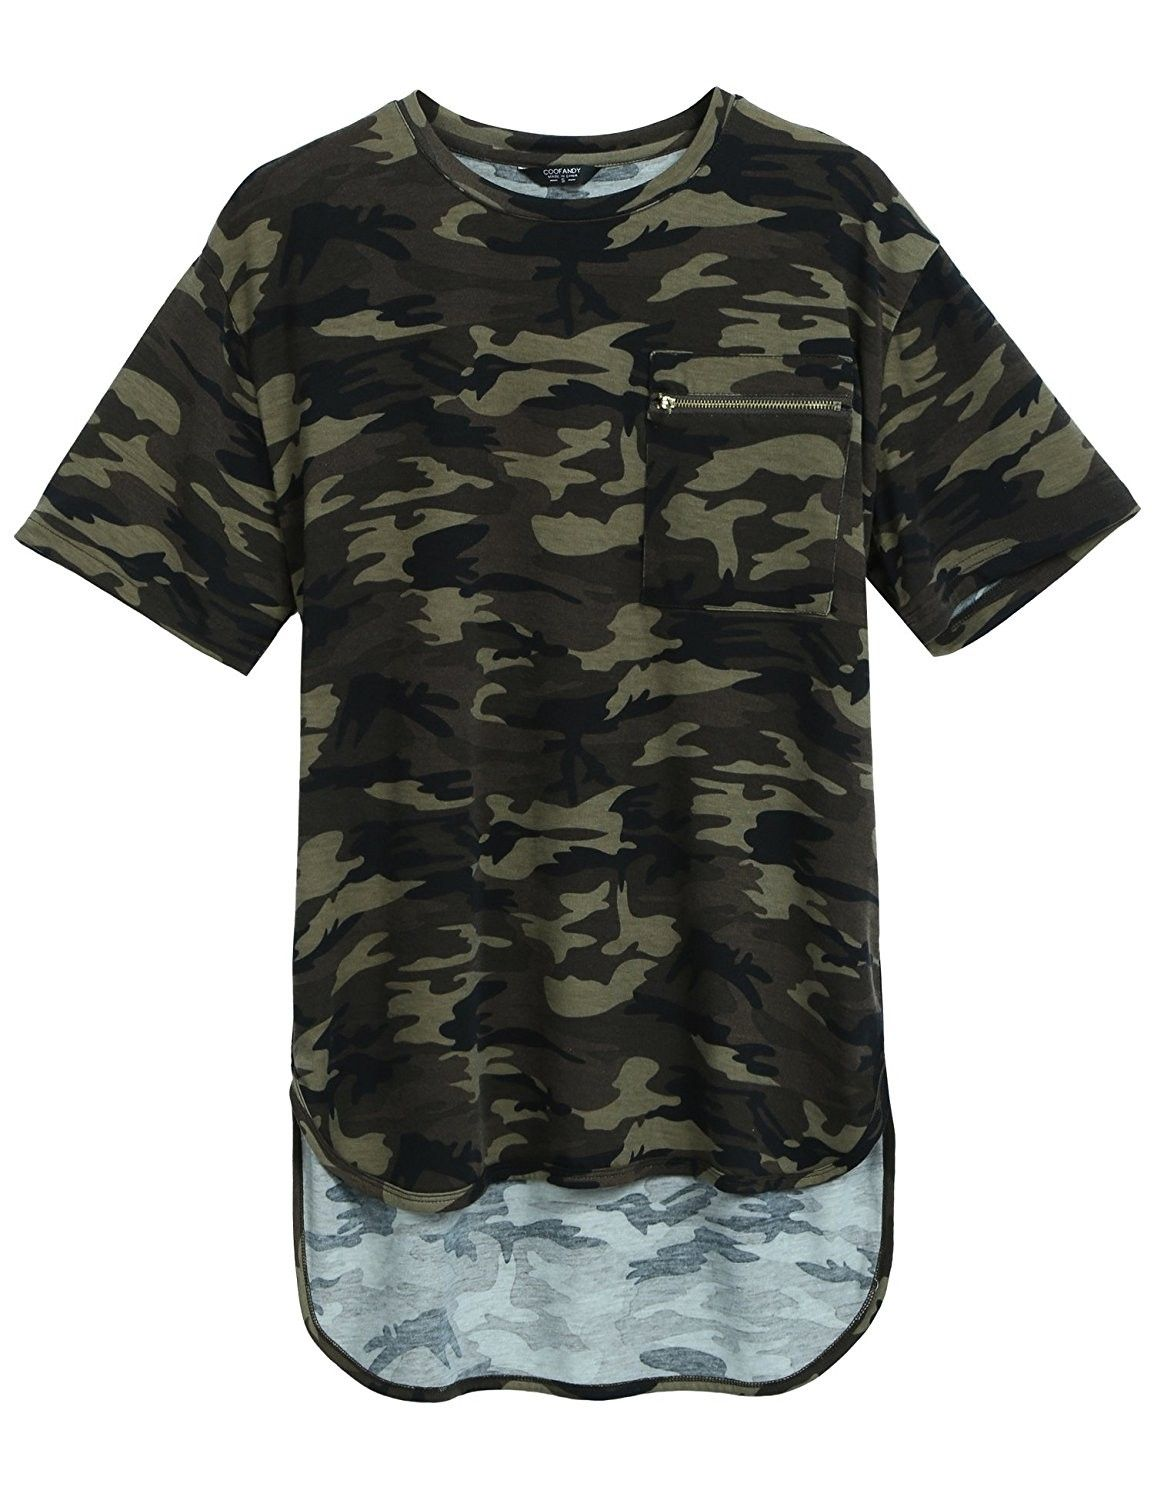 c28c0670c1 Mens Summer Hipster Hip Hop Camo-Camouflage T Shirts Longline Tee With  Zipper Pocket - Army Green - CL183EZZT4R,Men's Clothing, T-Shirts & Tanks,  ...